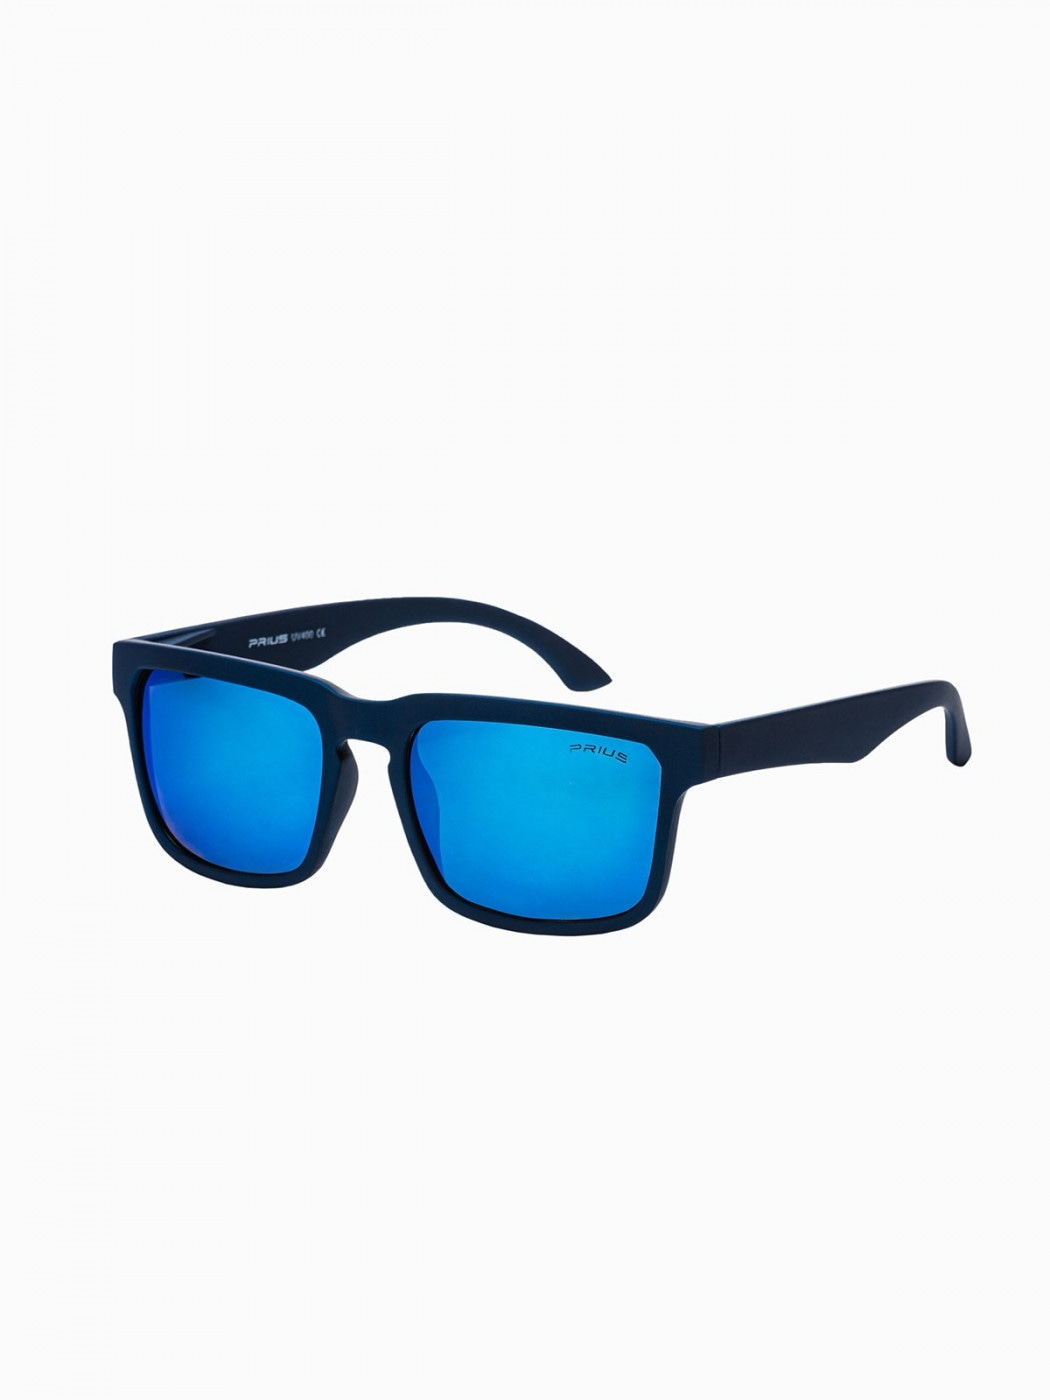 Ombre Clothing Sunglasses A284